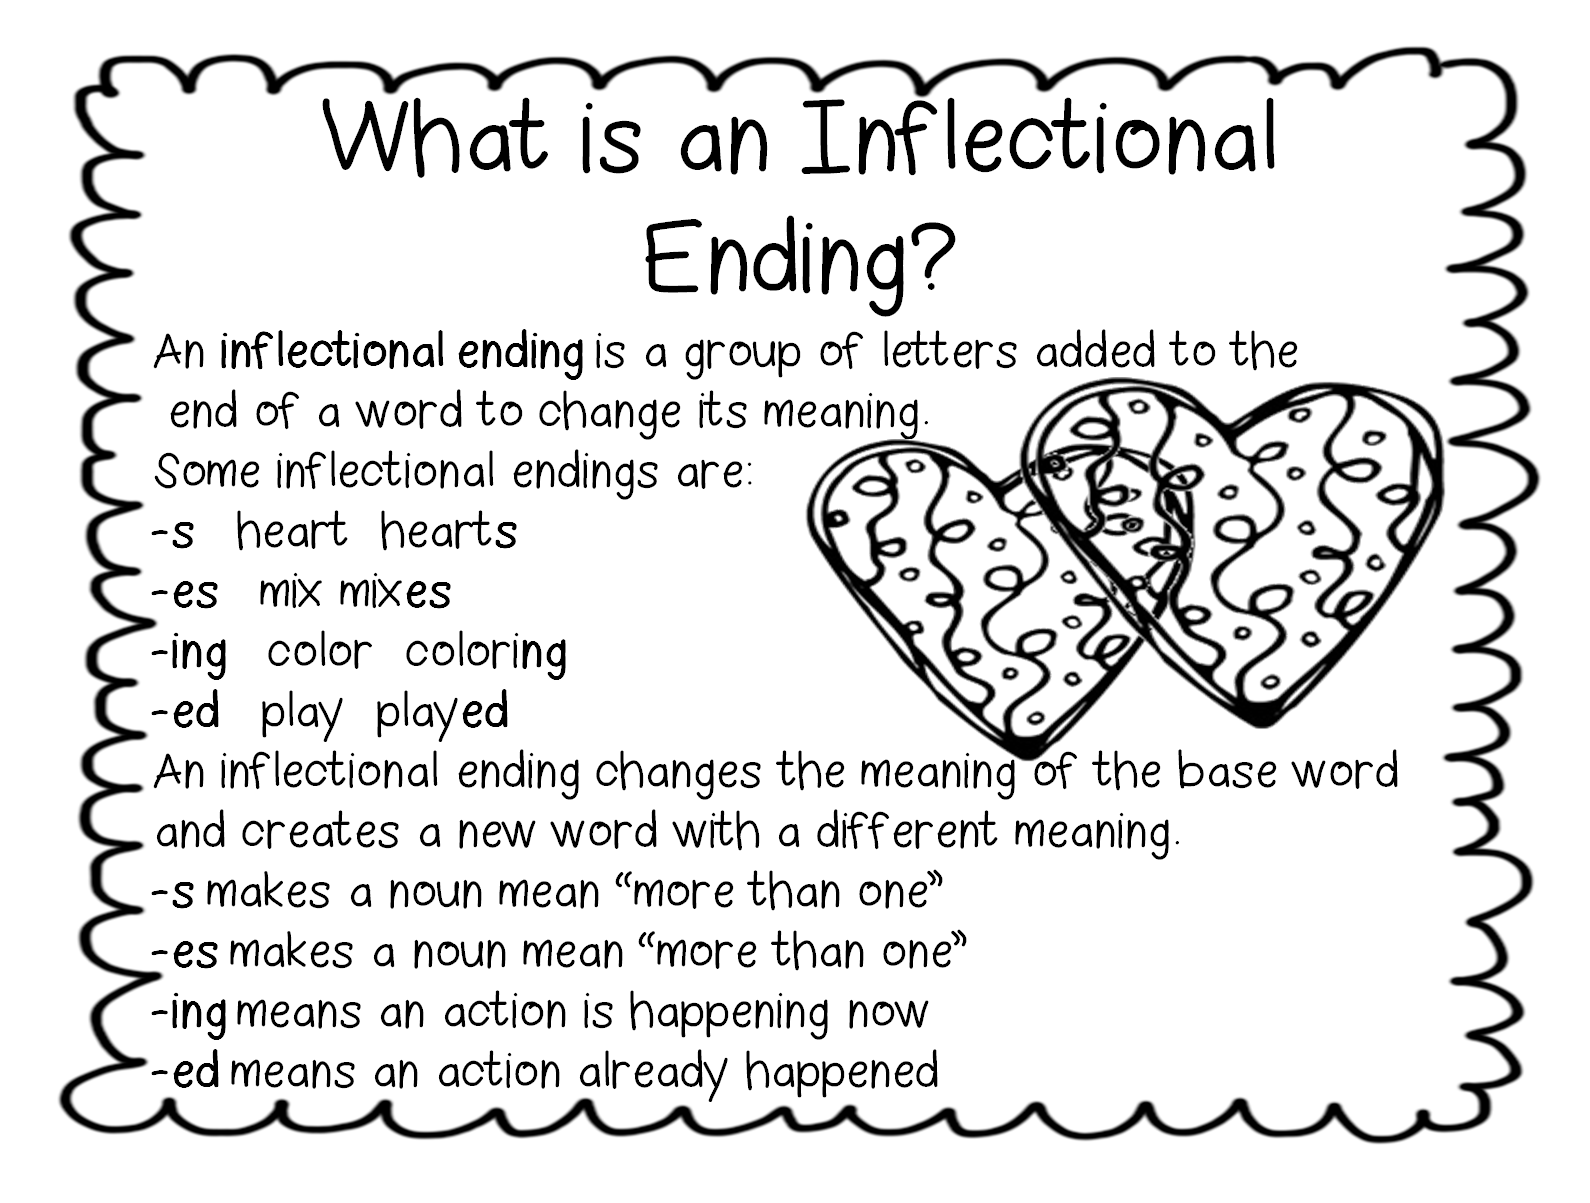 worksheet Ed Ing Worksheets 1000 images about inflection endings on pinterest long vowels inflectional and poster